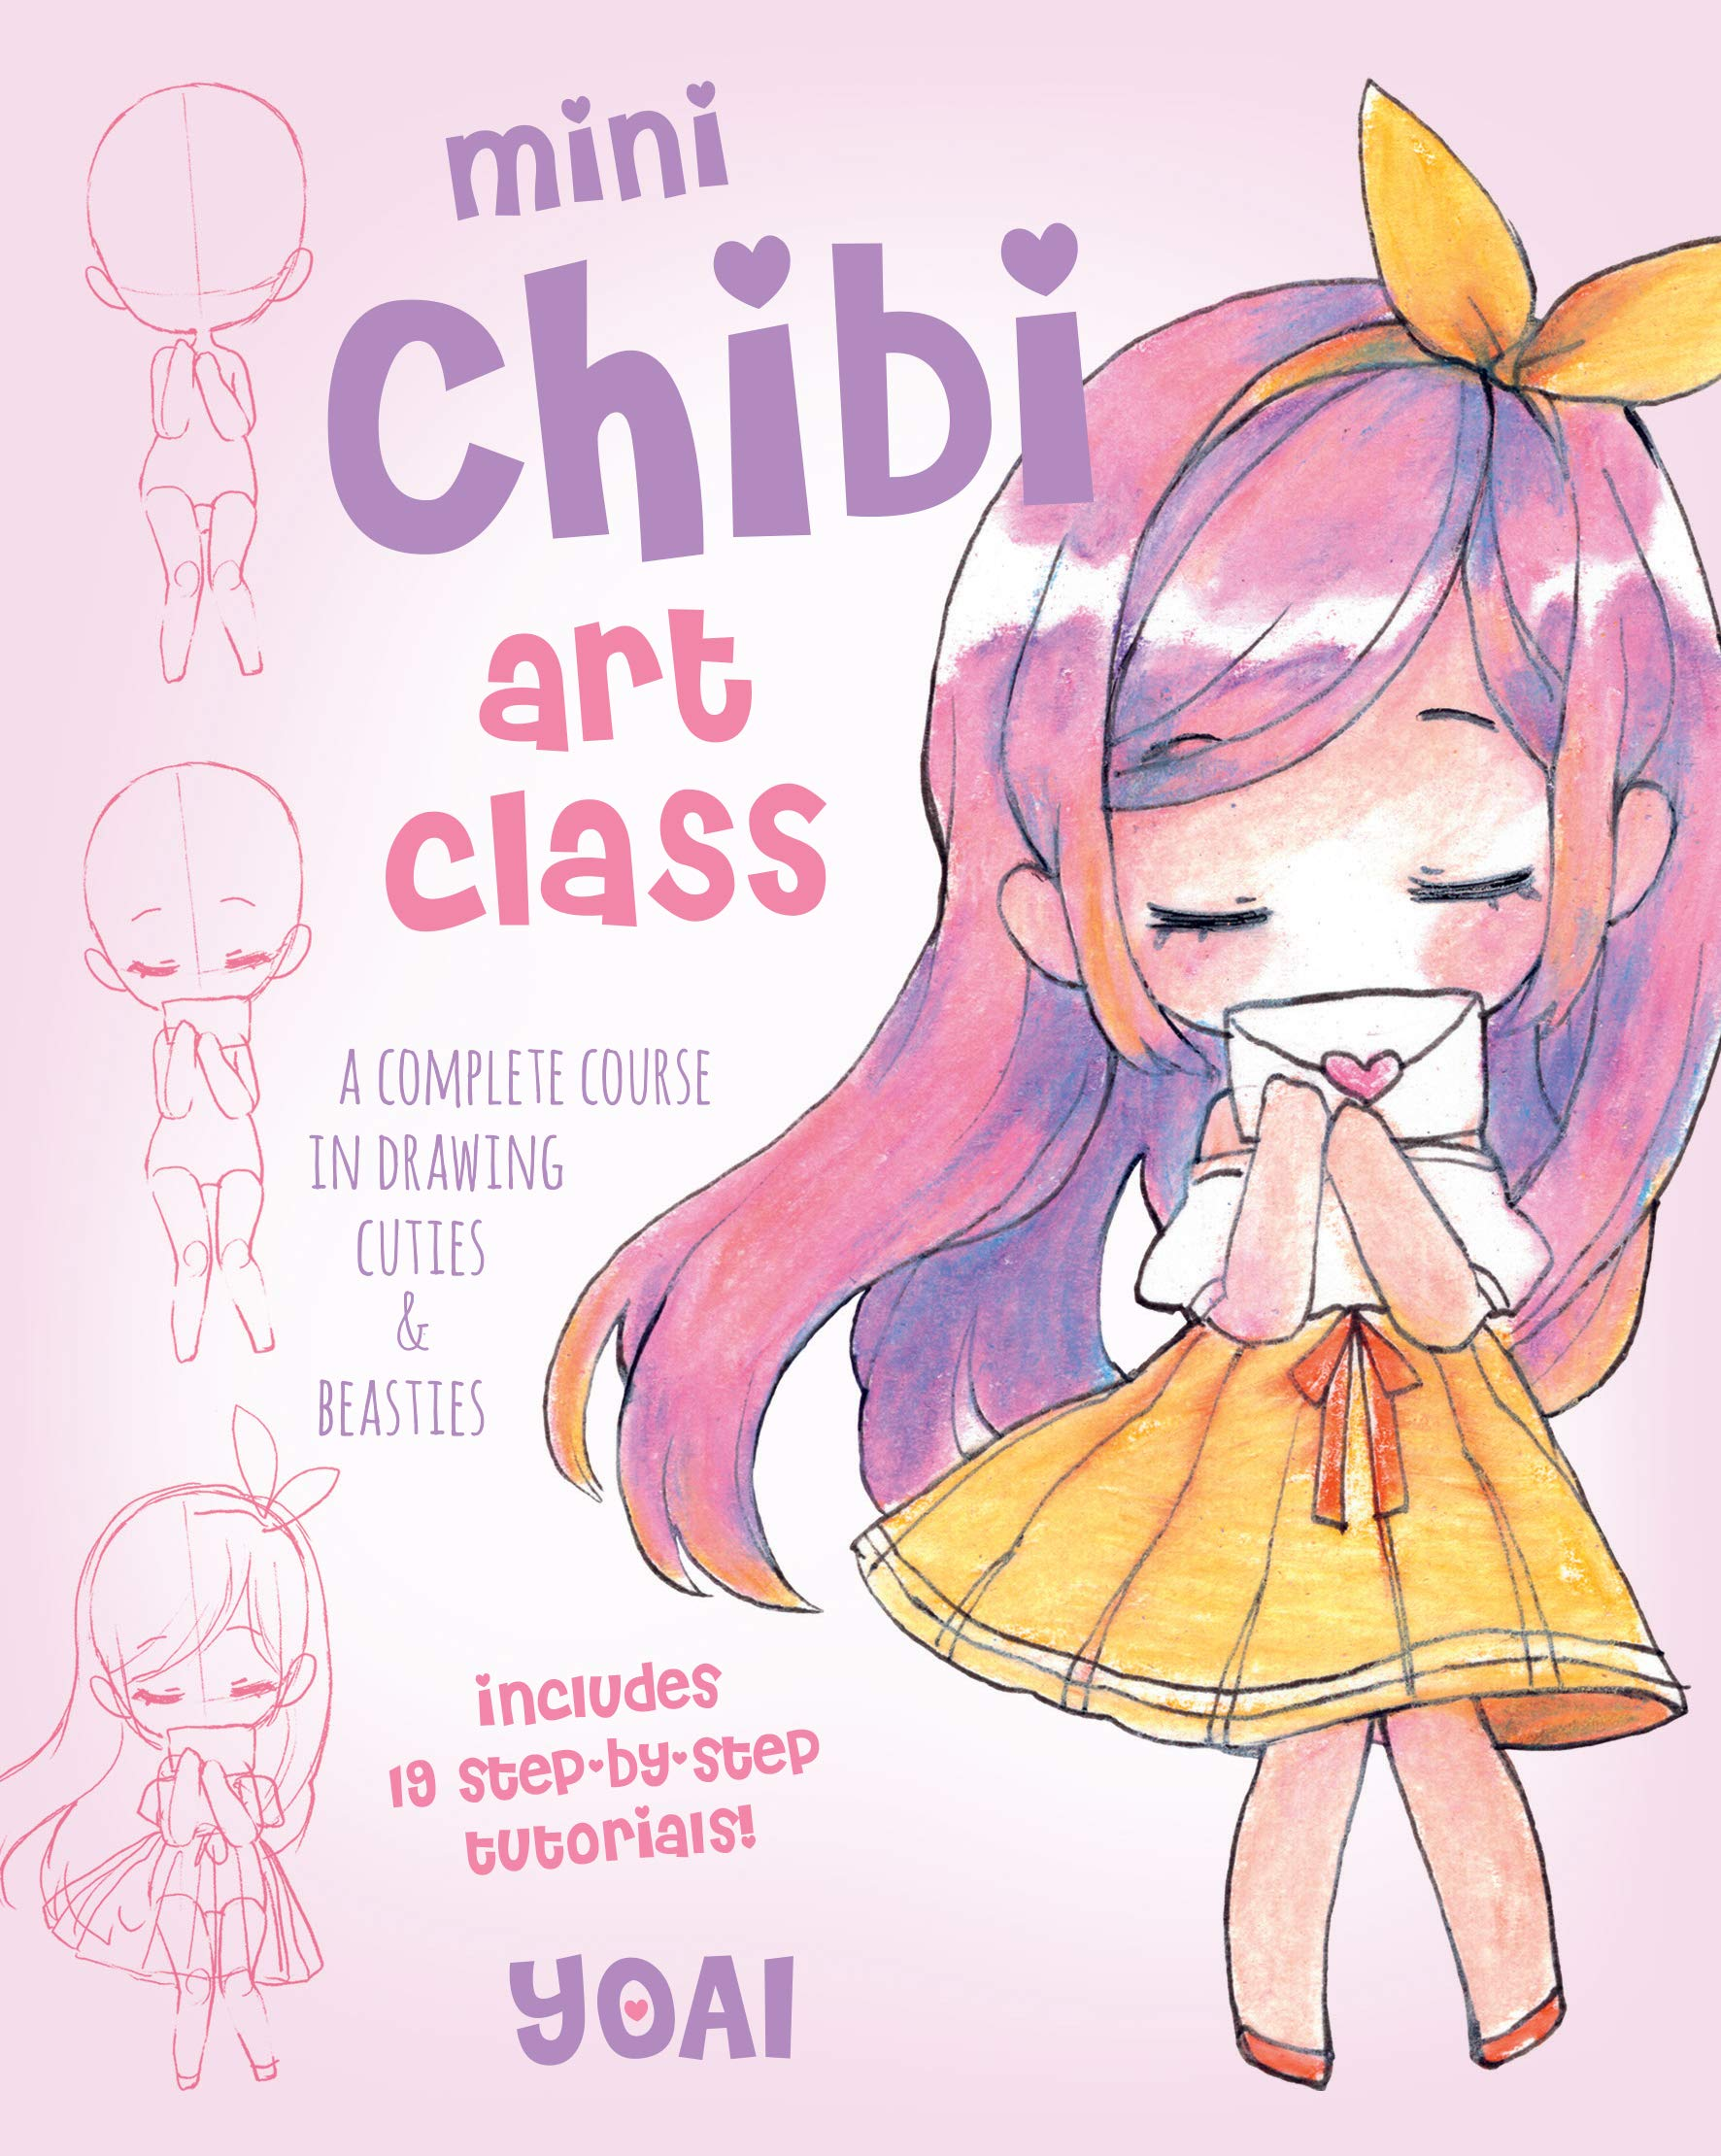 Amazon Com Mini Chibi Art Class A Complete Course In Drawing Cuties And Beasties Includes 19 Step By Step Tutorials Mini Art 1 9781631067174 Yoai Books